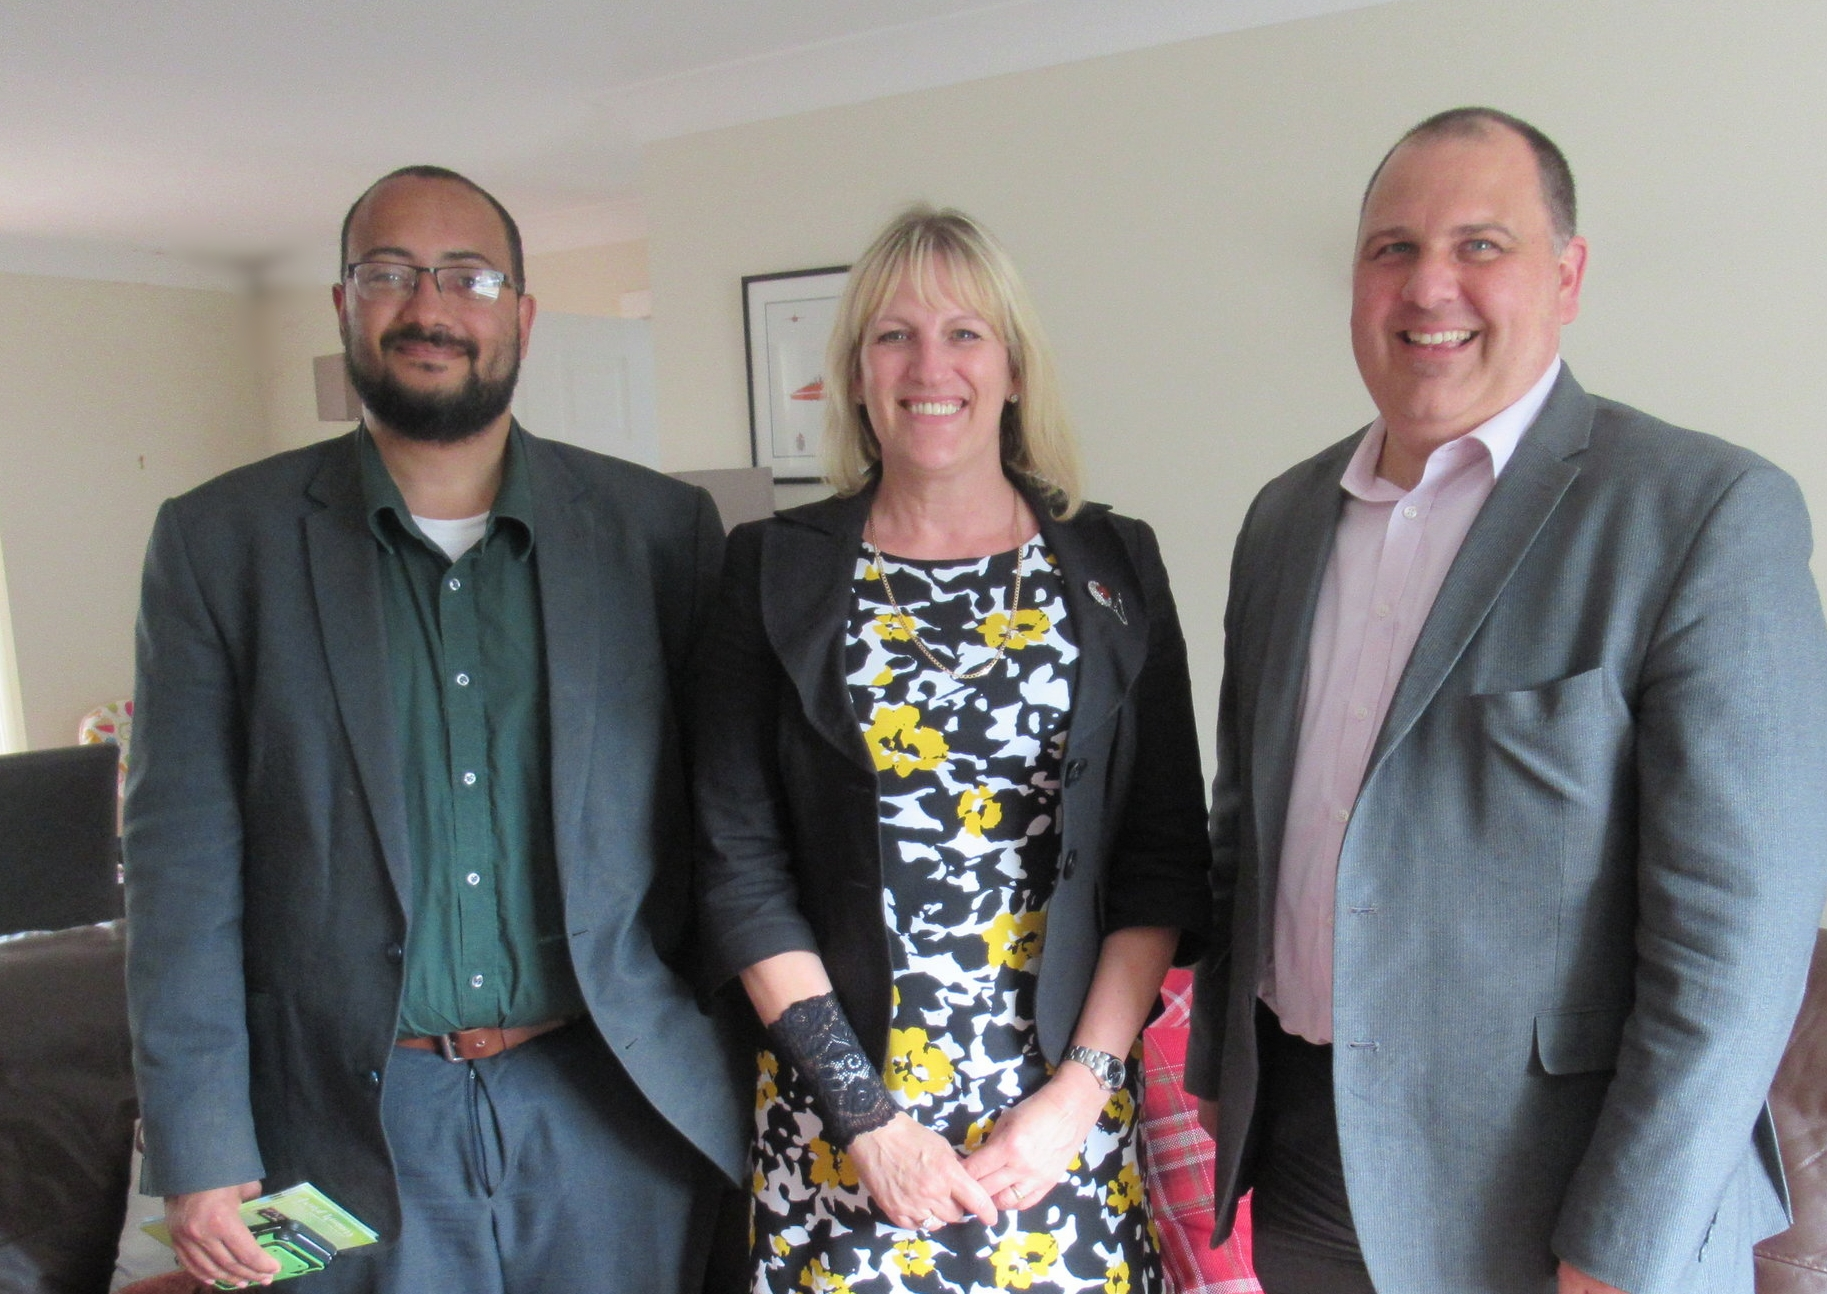 From left to right, Enterprise Dorset Area Manager, Linda Ladle, Careers & Employability Manager at Bournemouth University and Paul Hanrahan, Enterprise Talent Acquisition Manager, Sound Coast and Central Region.